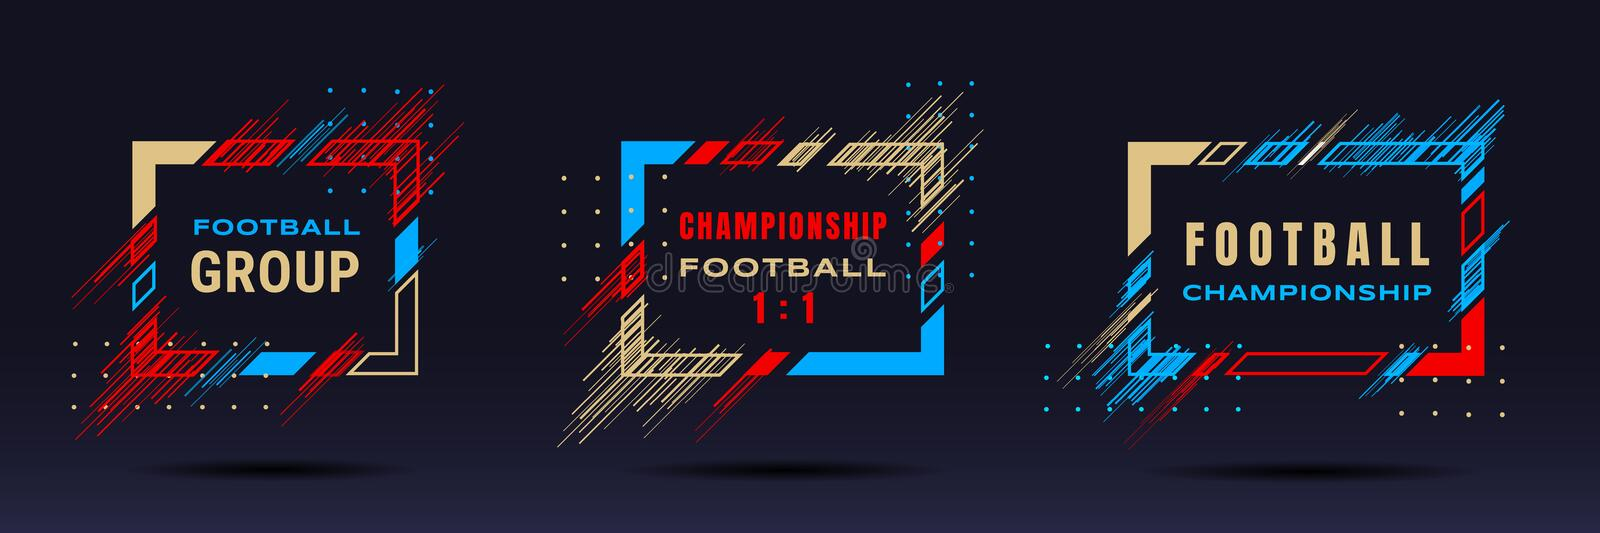 Football cup, soccer championship illustration. Vector frames with dynamic lines isolated on black background. Glitch stock illustration